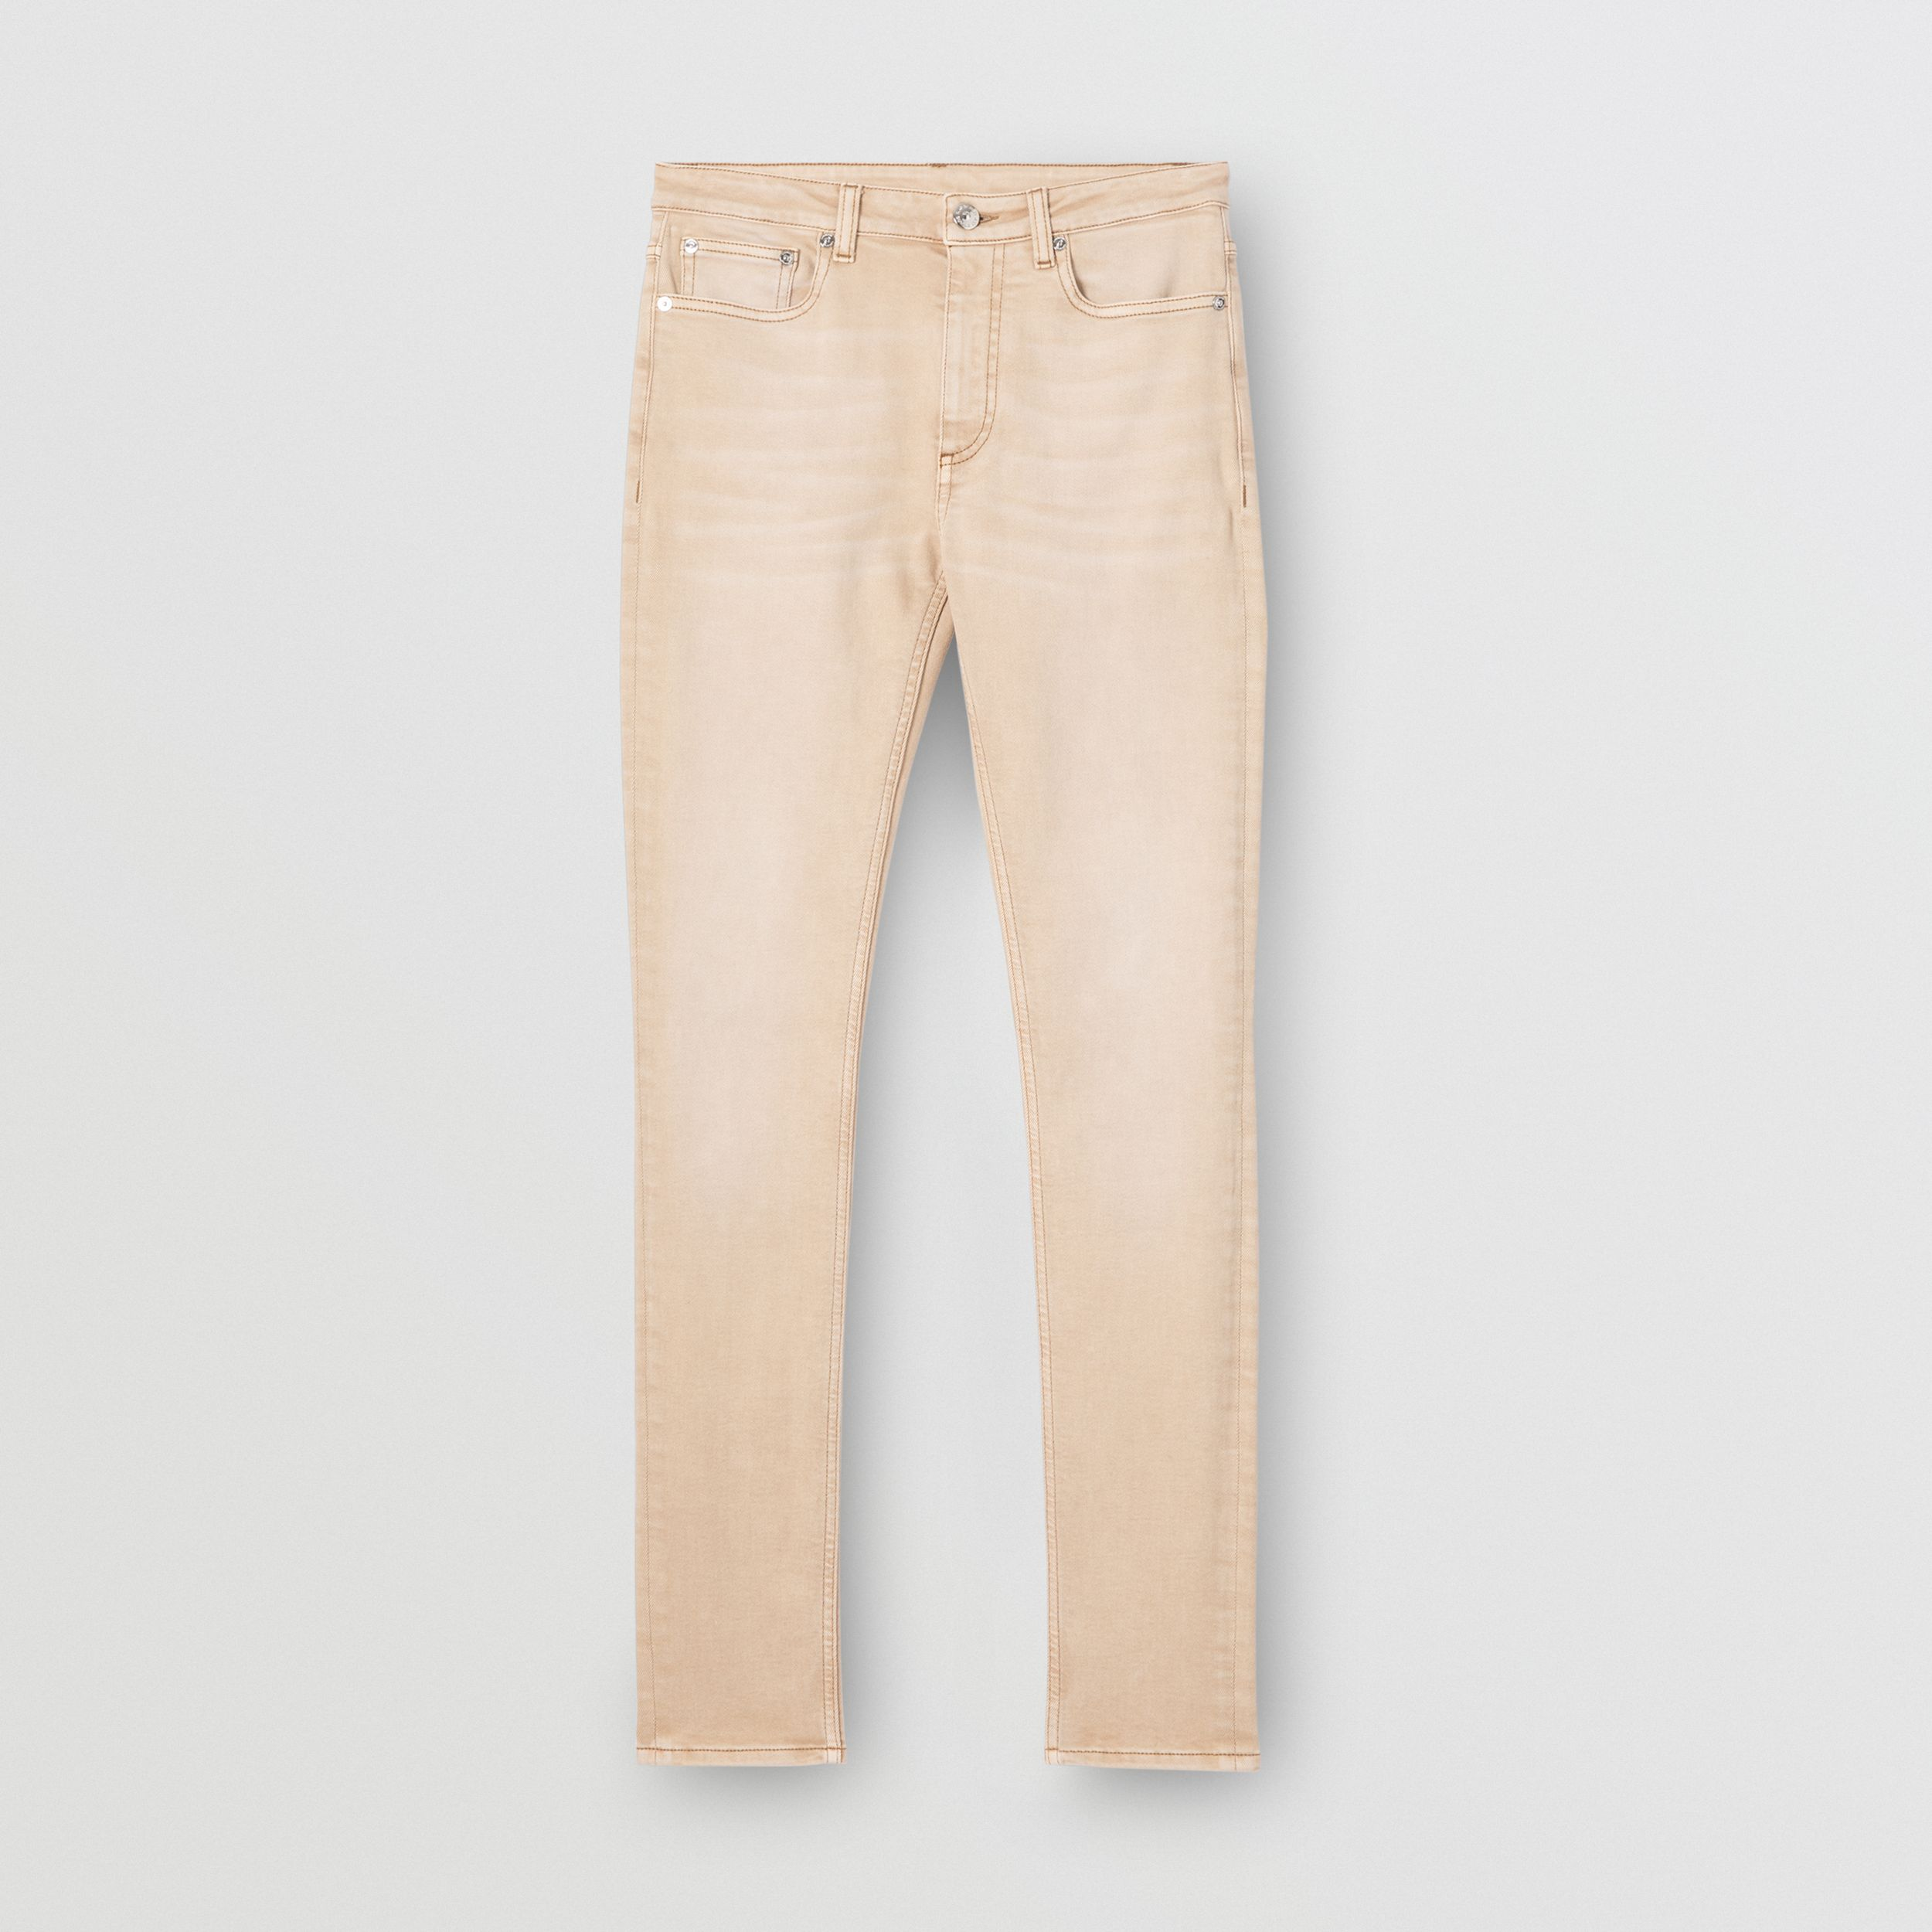 Skinny Fit Washed Japanese Denim Jeans in Honey - Women | Burberry - 4